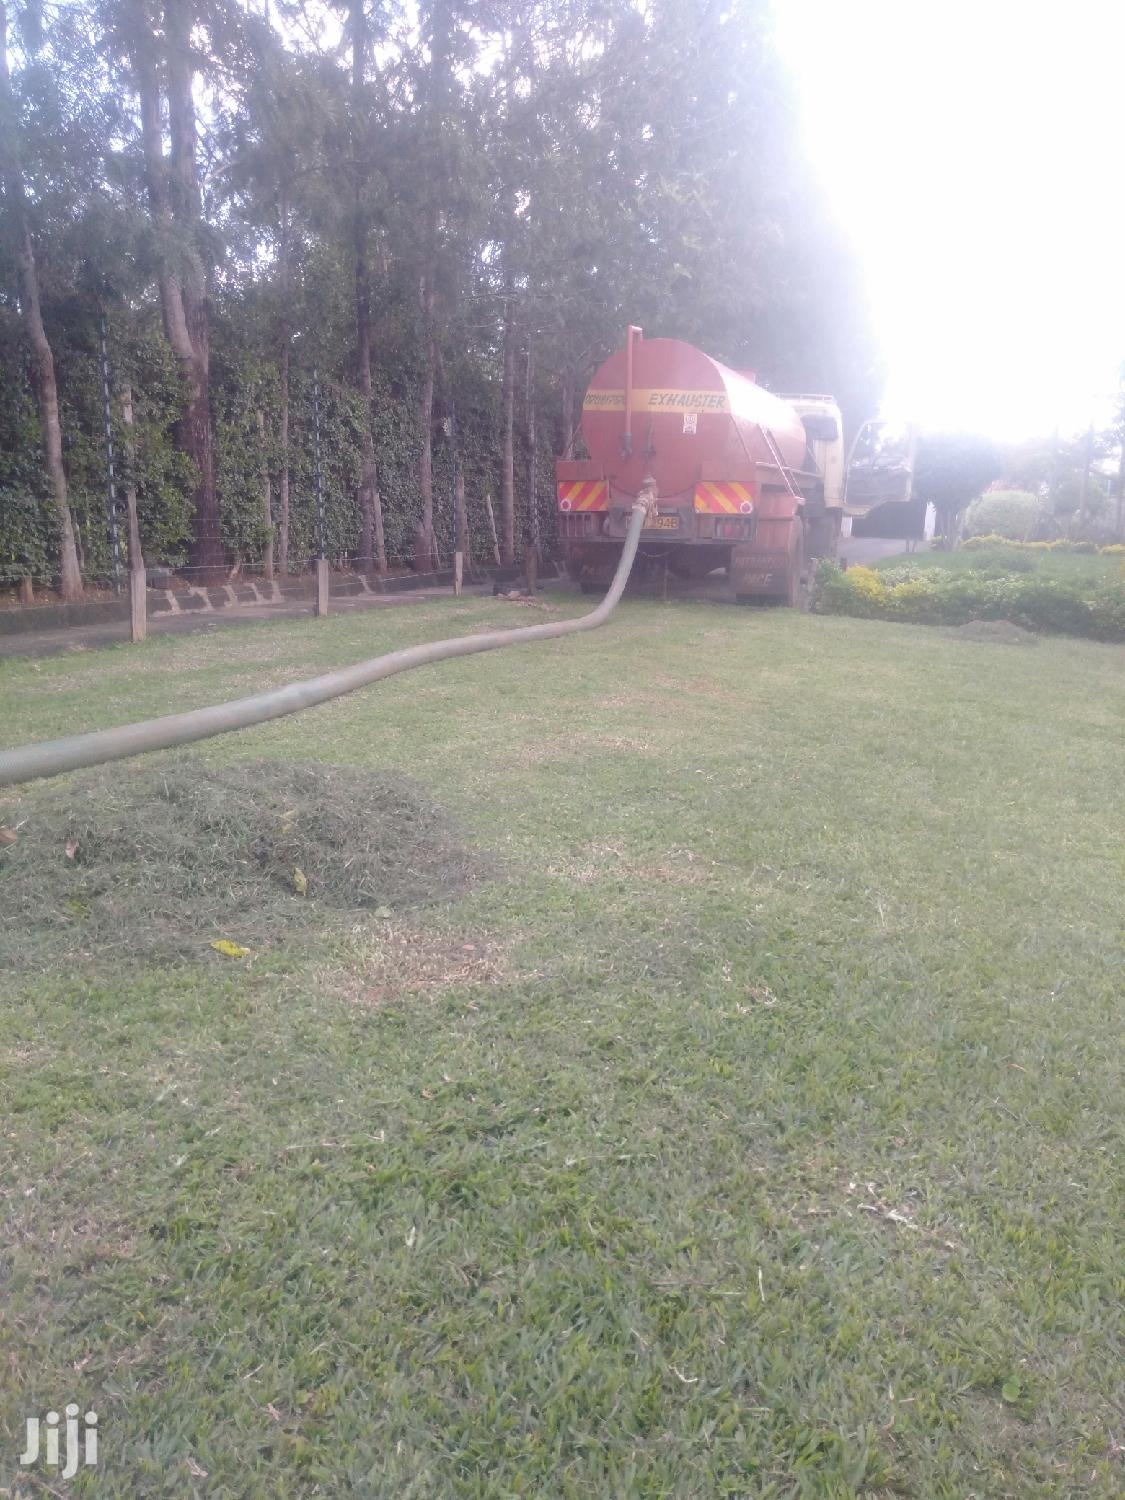 Exhauster/Sewage Services | Other Services for sale in Karen, Nairobi, Kenya